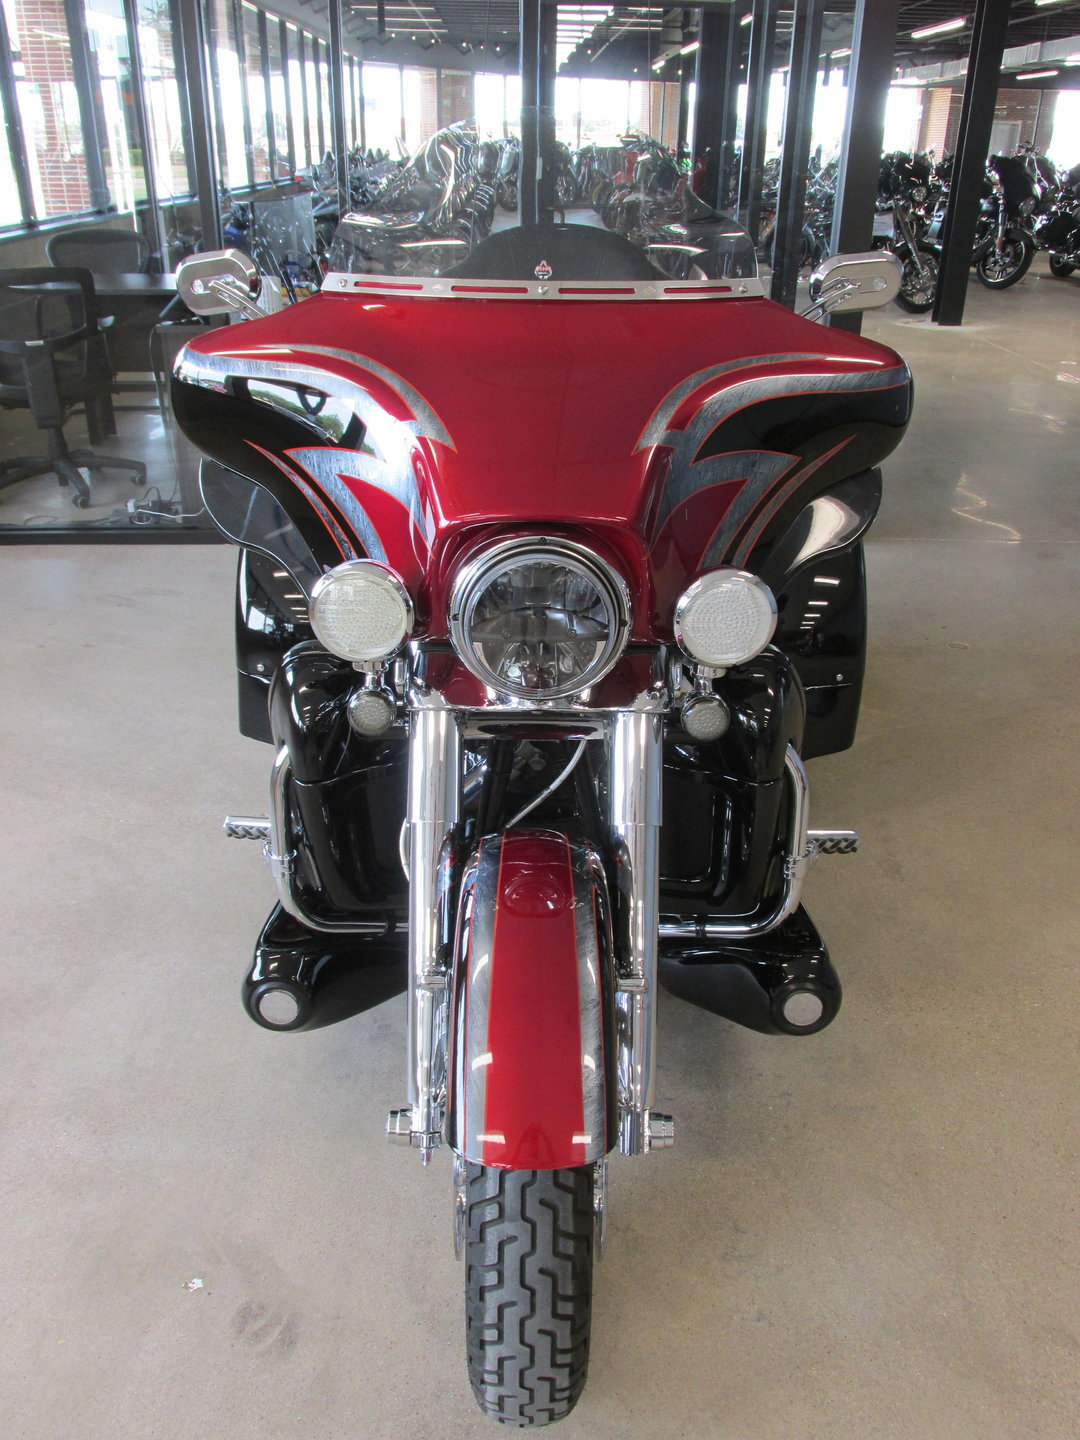 2012 Harley Davidson Tri Glide Berlin Motors Red For Sale